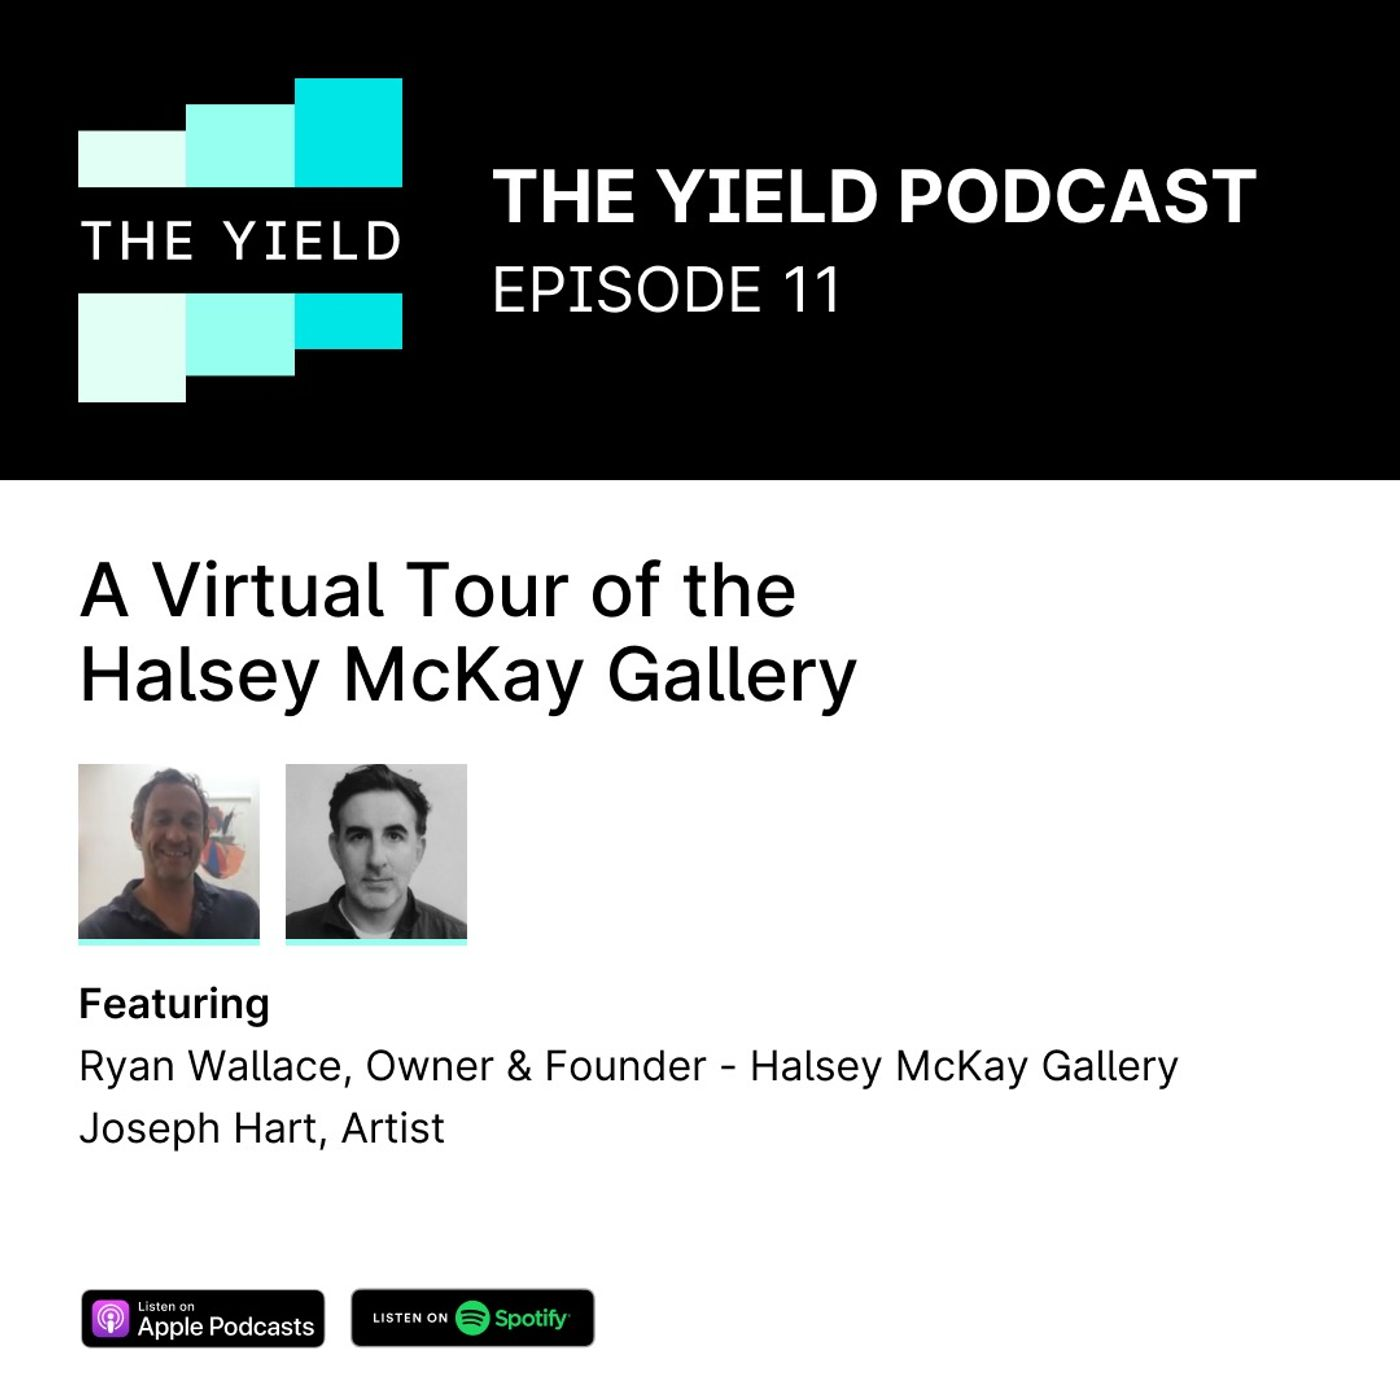 Virtual Tour of the Halsey McKay Gallery with Joseph Hart